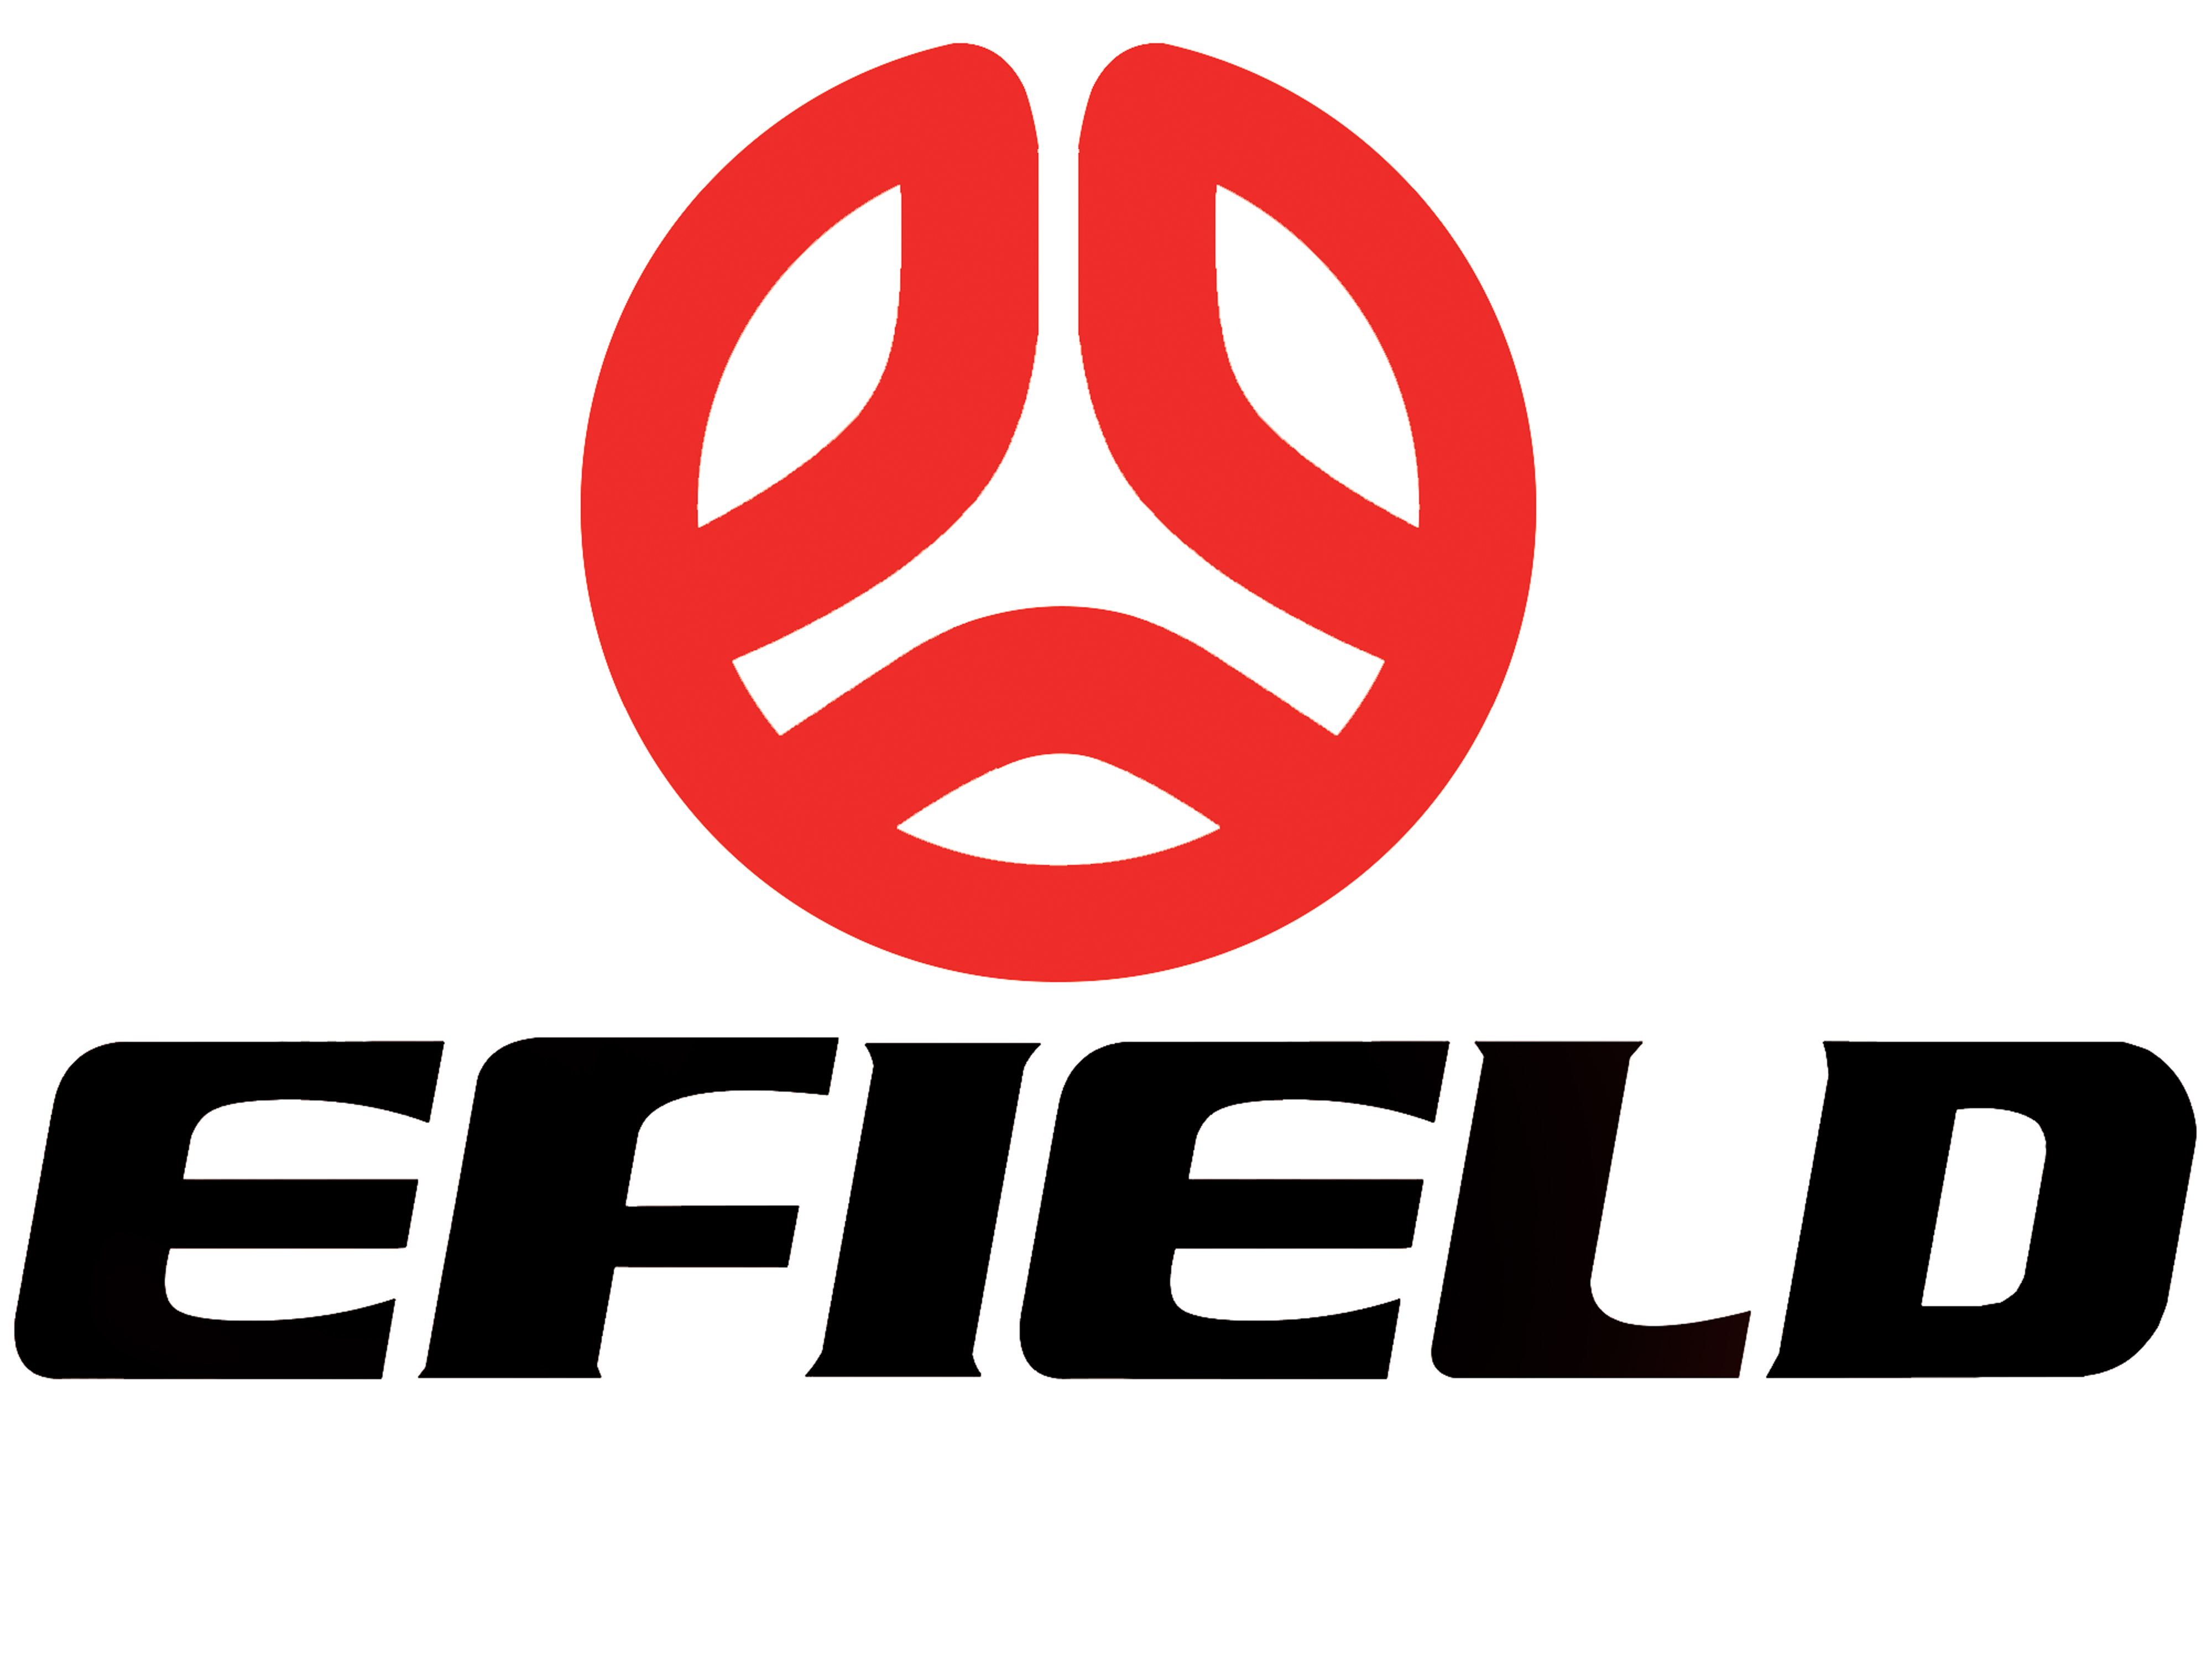 Shandong Efield Piping System Co.,Ltd